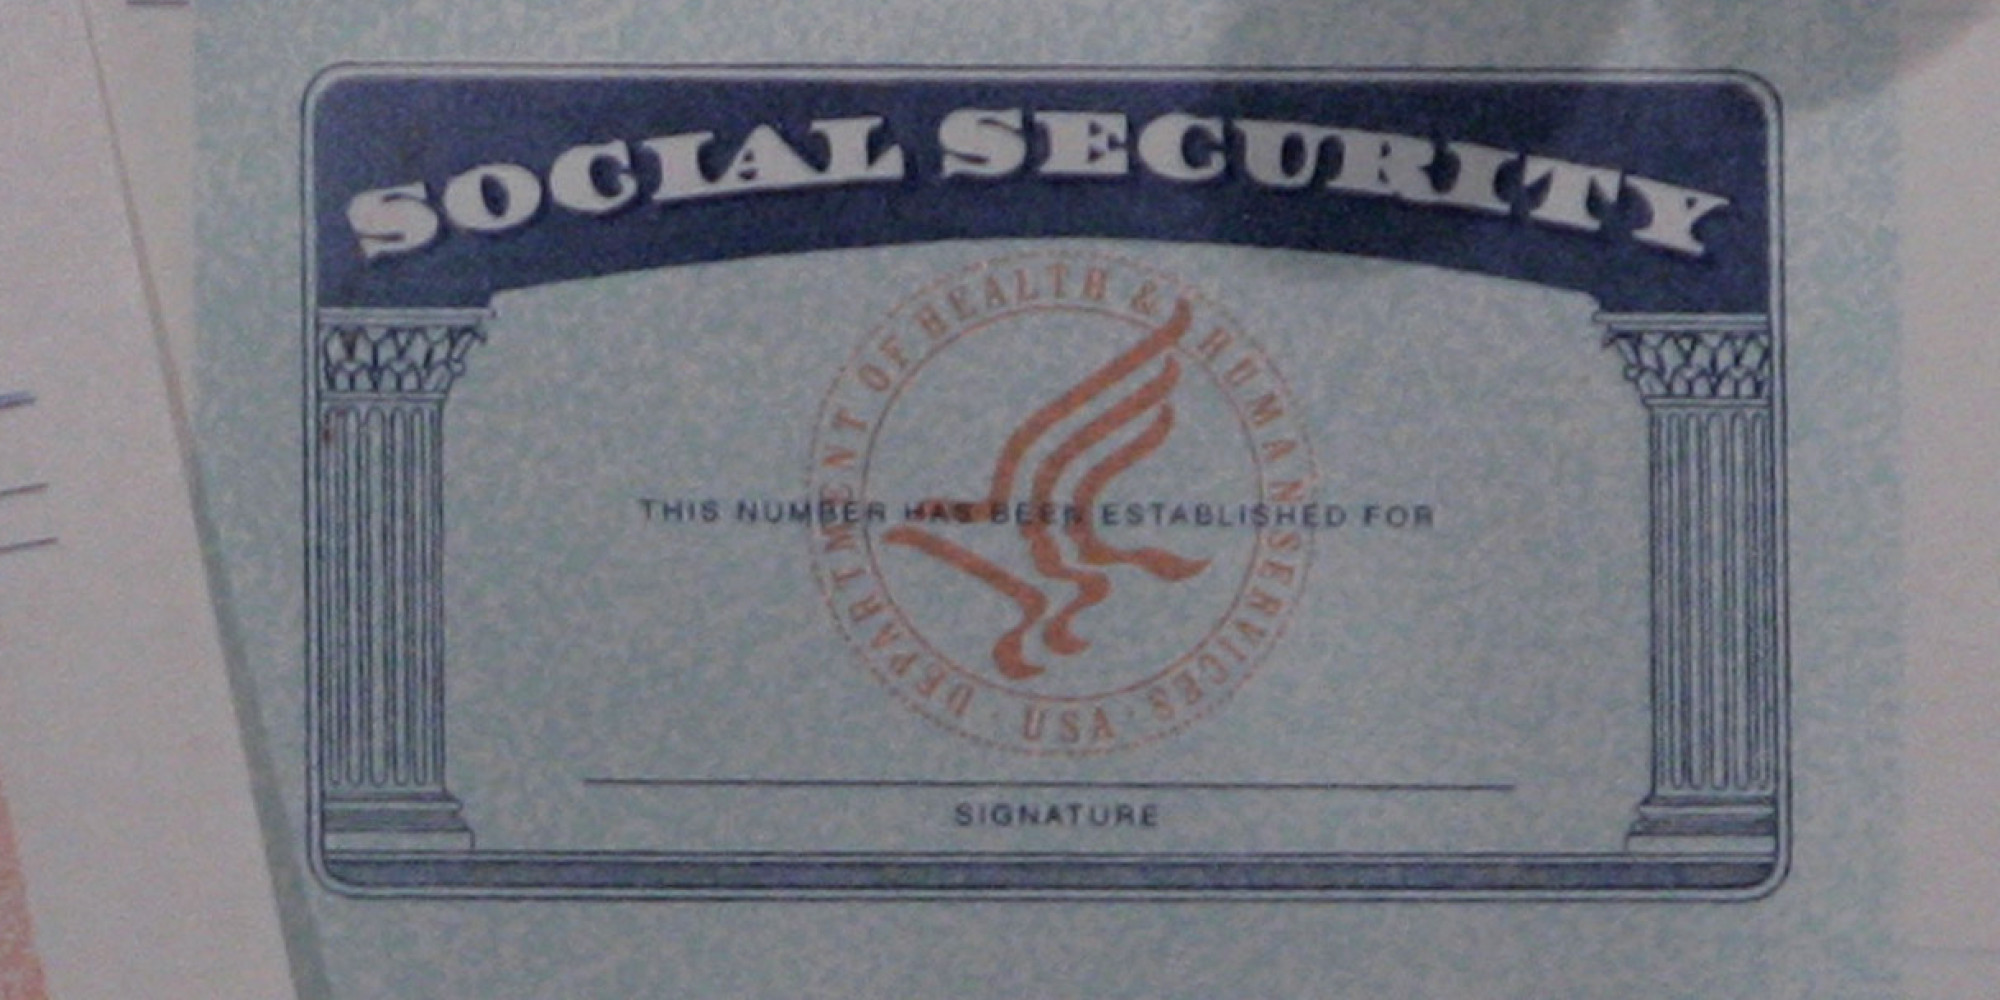 americas social security running on empty essay The social security trustees' best estimates are that the program will still be able to pay out roughly 77% of near-term benefits after those trust funds empty, and about 72% of benefits over the.